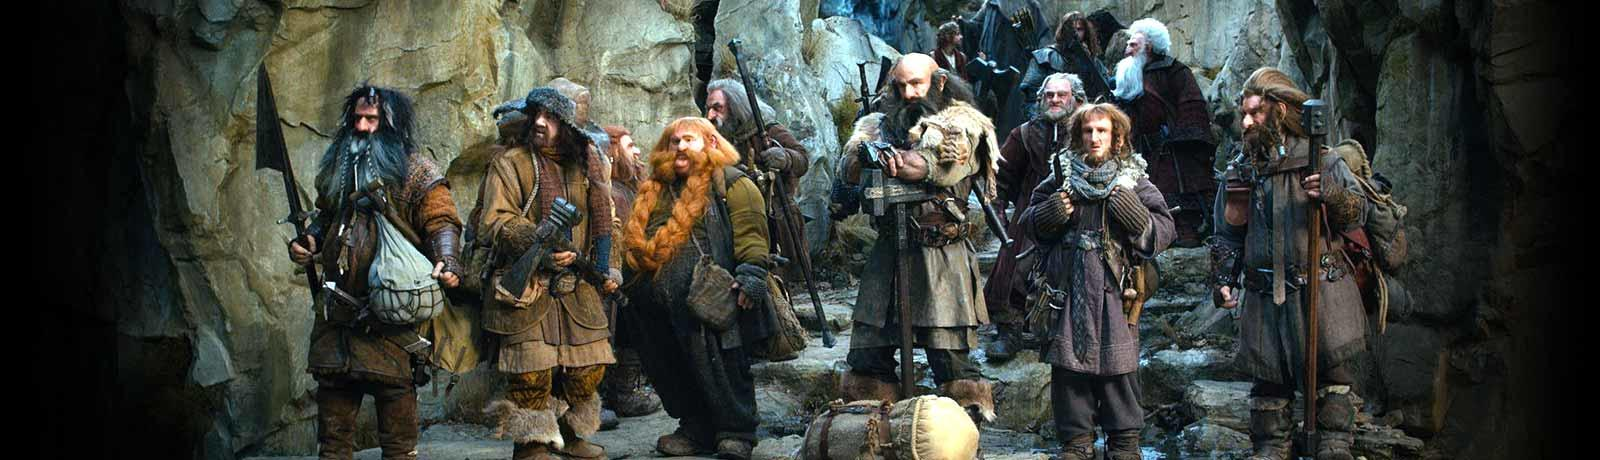 Quiz: How Well Do You Know Your 'Hobbit' Dwarves?